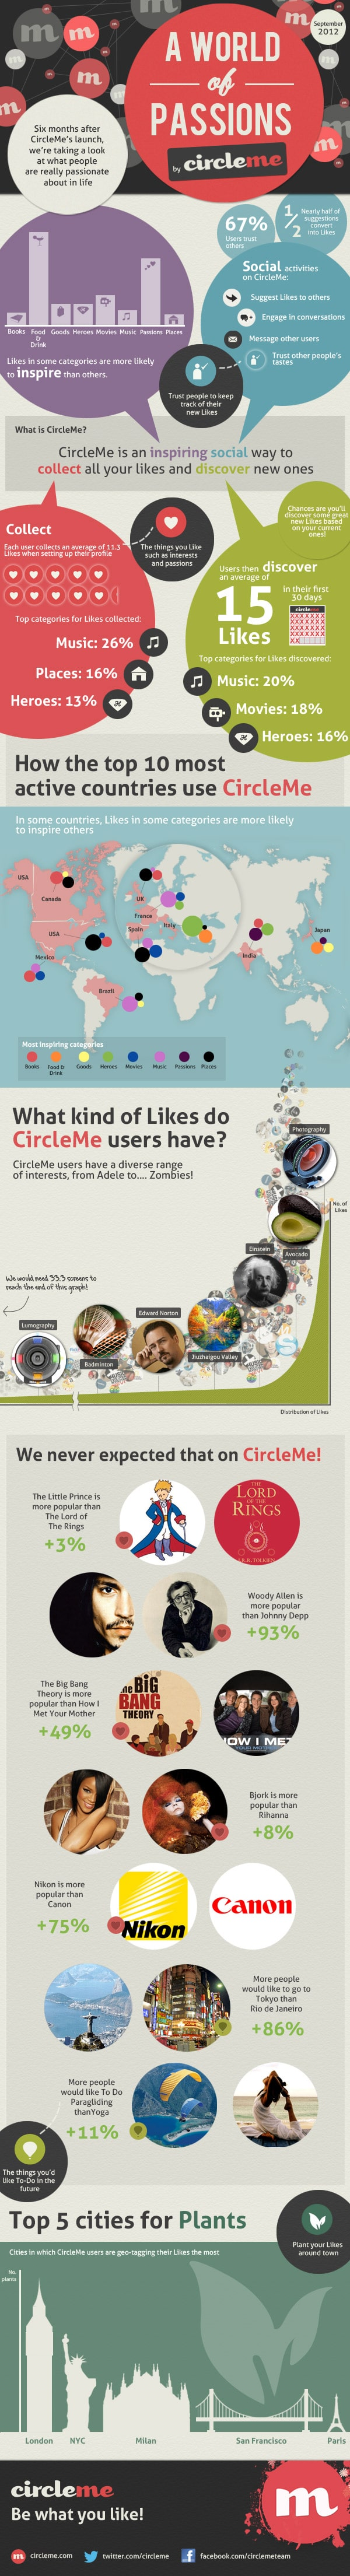 CircleMe Users Passions Infographic